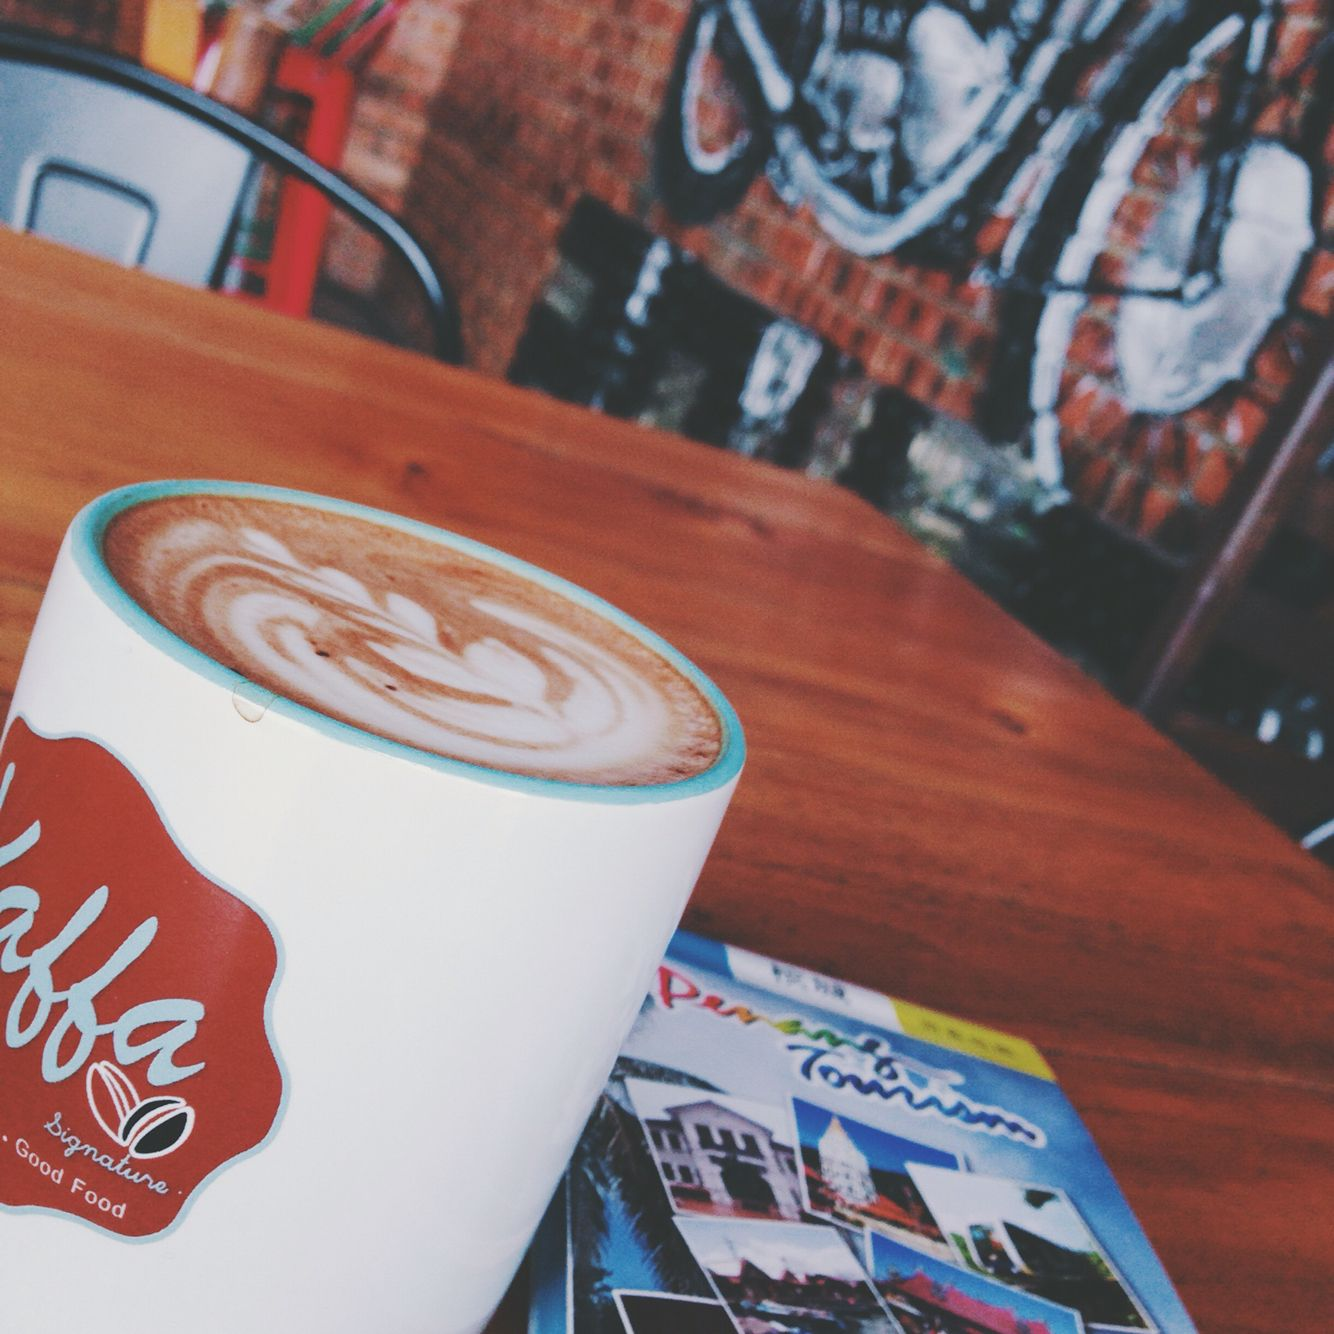 6 Foolproof Ways to Kick a CaffeineAddiction images